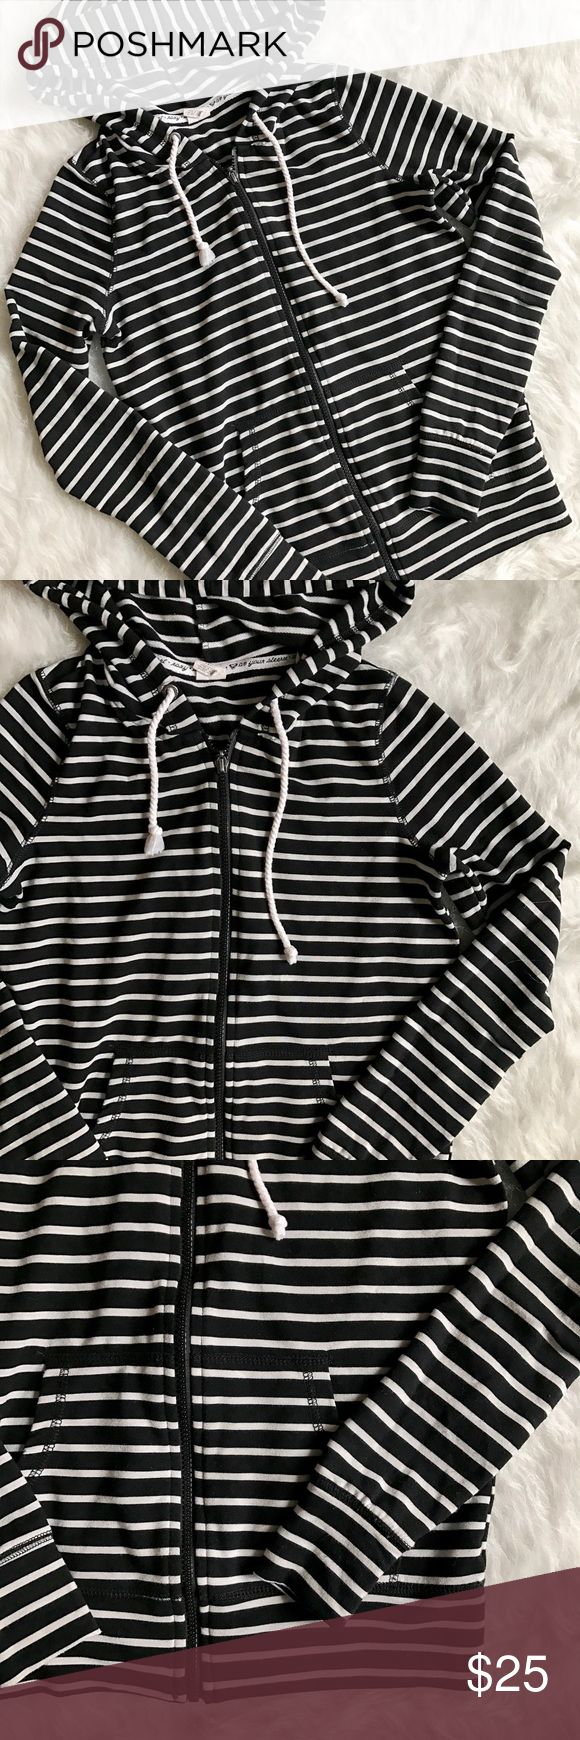 Roxy Stripe Zip Up Hoodie Sweatshirt I love this hoodie, I just don't wear it enough. It's very stretchy and super soft with a very flattering fit. Black and white stripes. Excellent condition with no pilling at all. Size small. Roxy Tops Sweatshirts & Hoodies